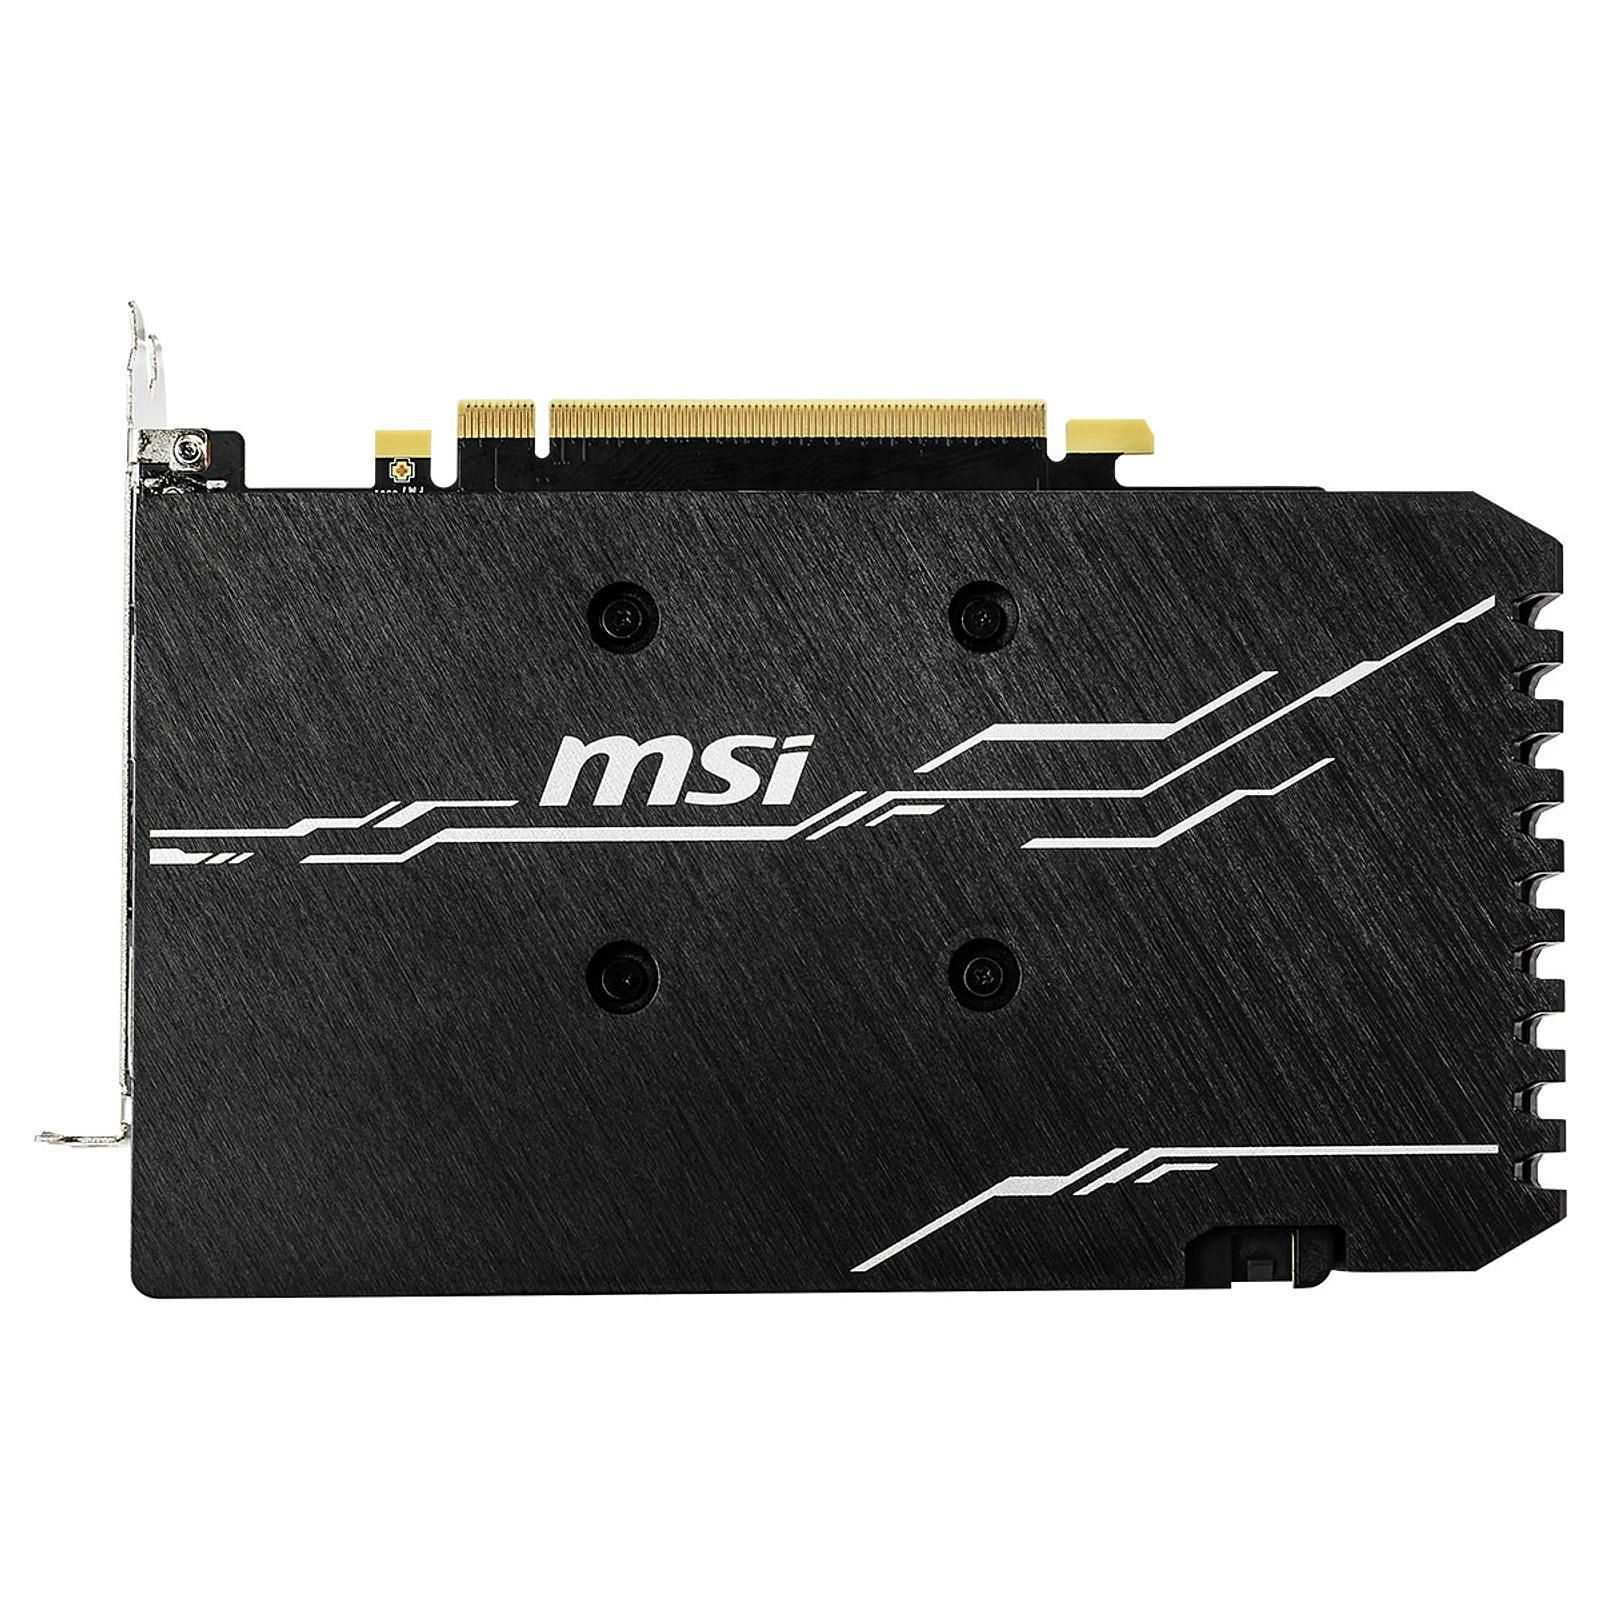 Carte graphique MSI GeForce GTX 1660 VENTUS XS 6G OC 6Go DDR5 PCIe 3.0, informatique reunion, informatique ile de la Réunion 974